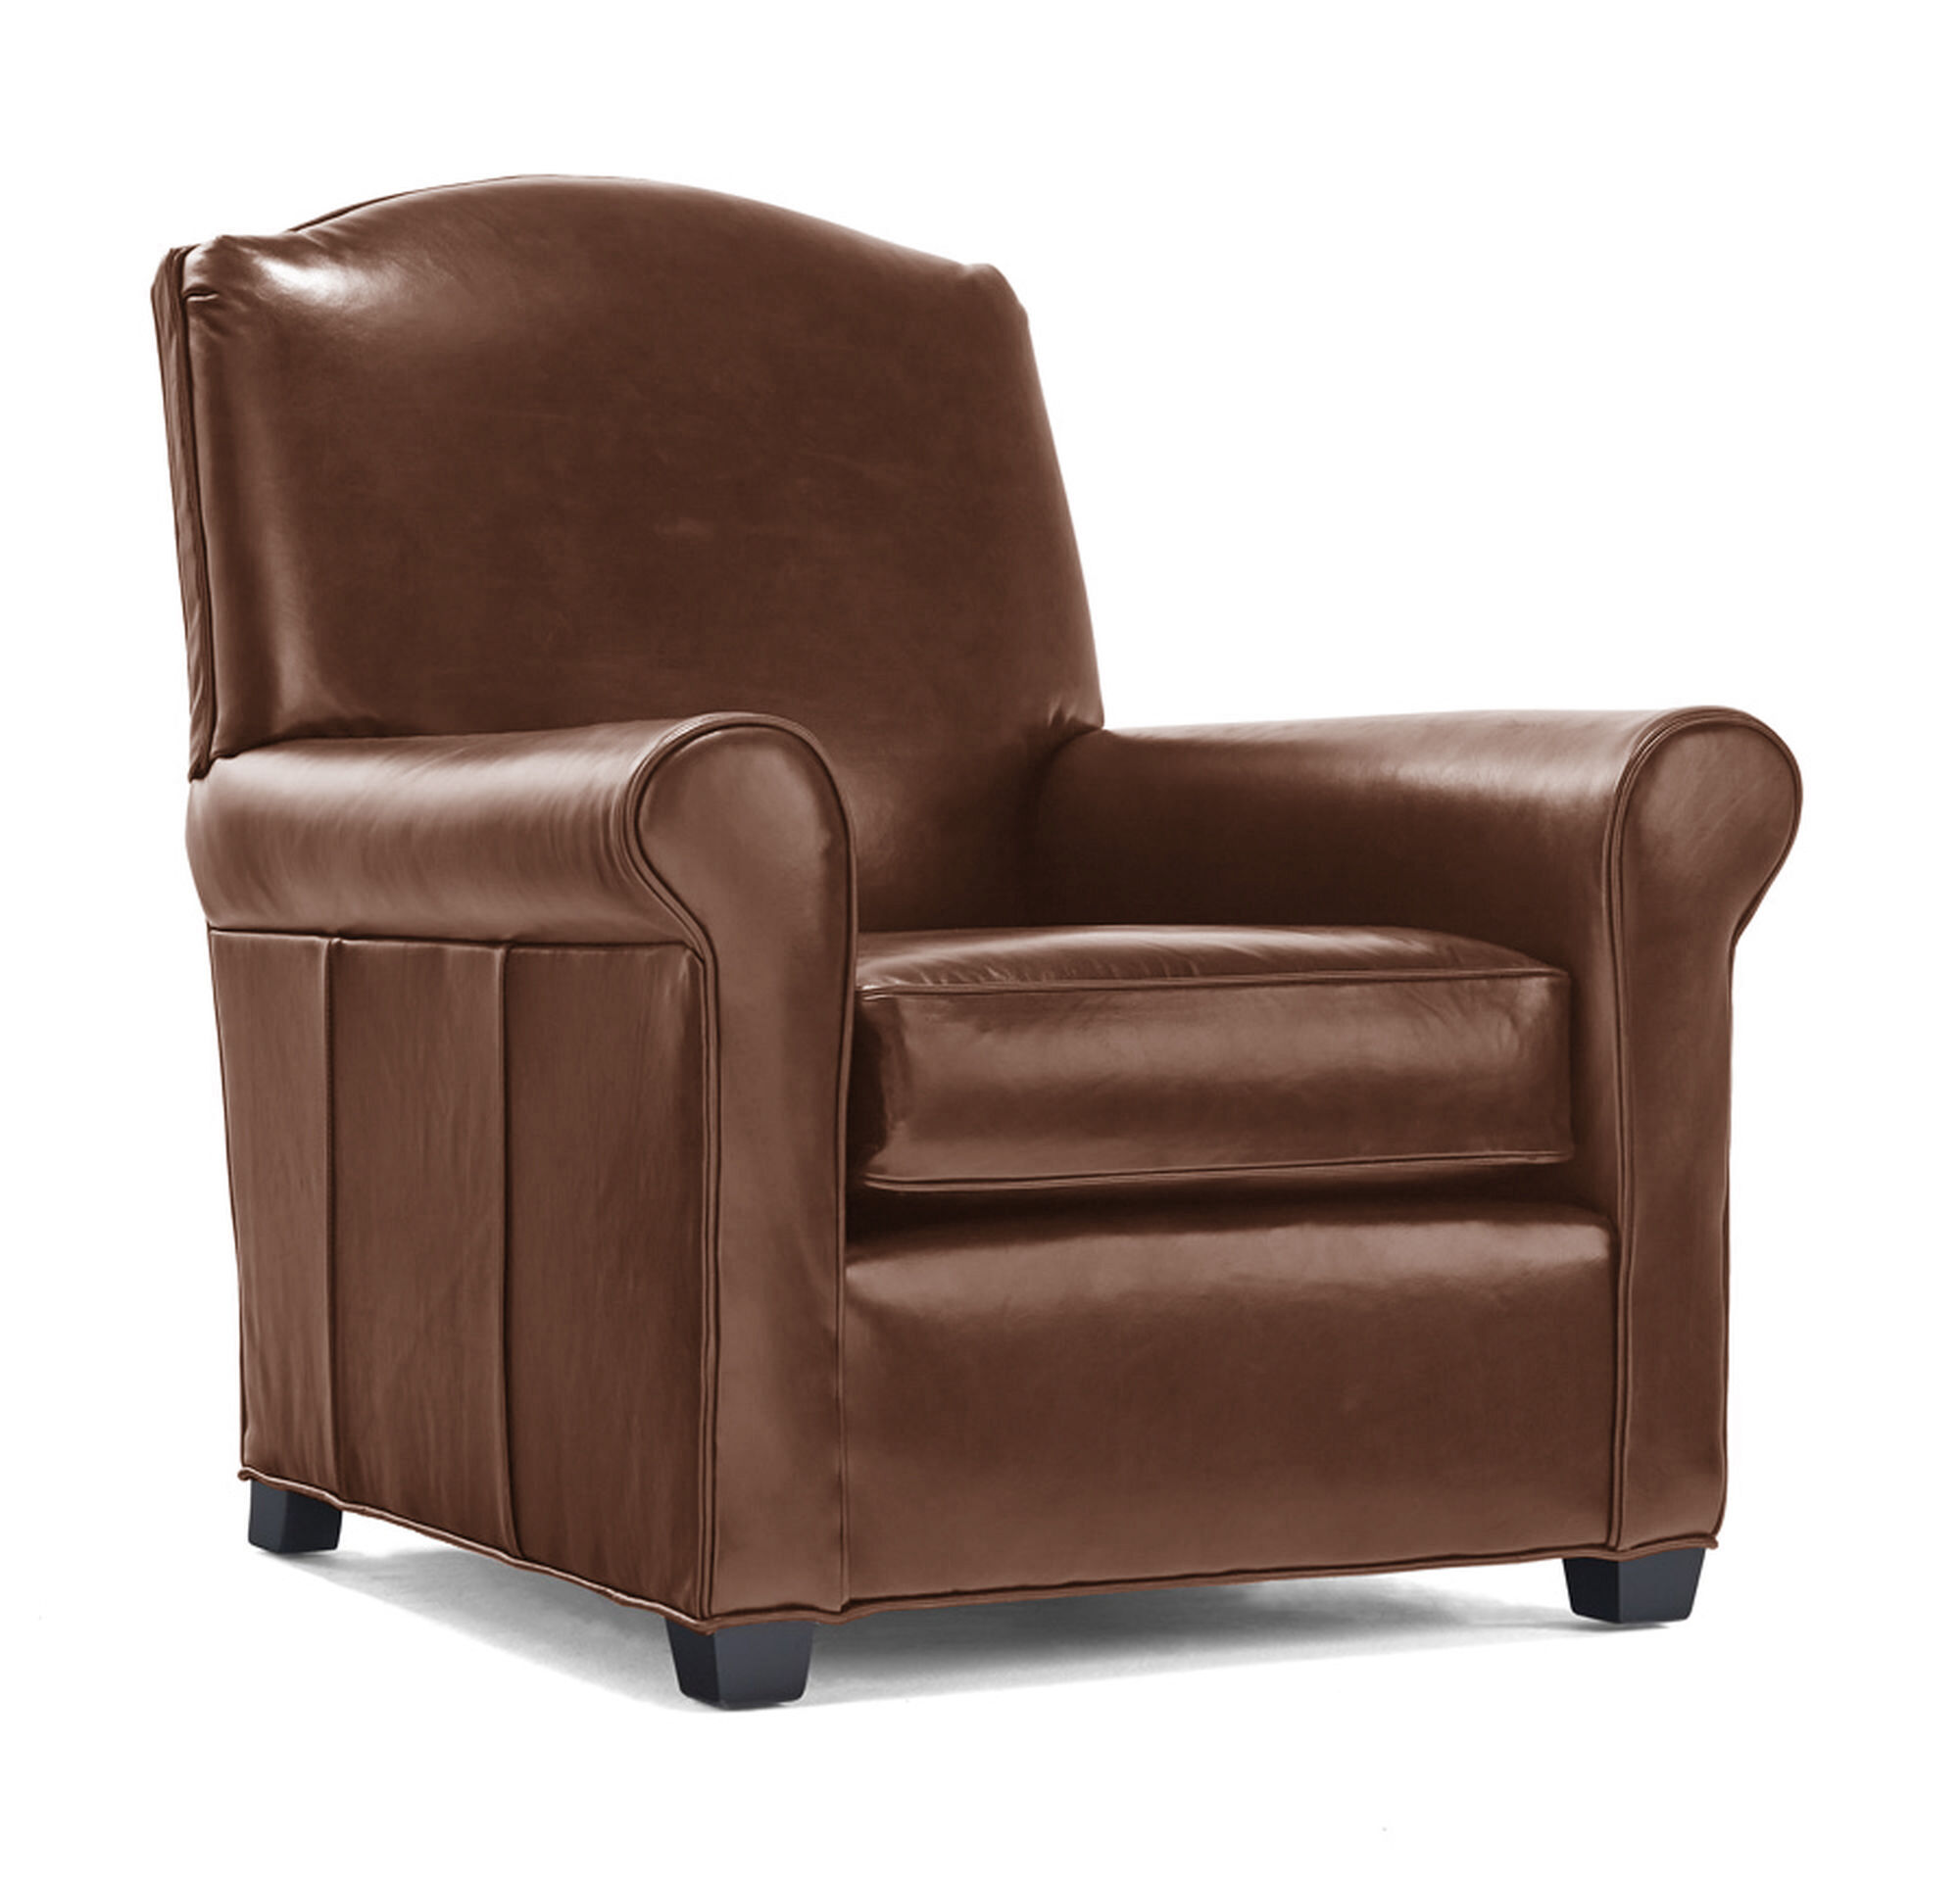 Attirant CHANDLER LEATHER CHAIR, PENLAND   TOBACCO, Hi Res